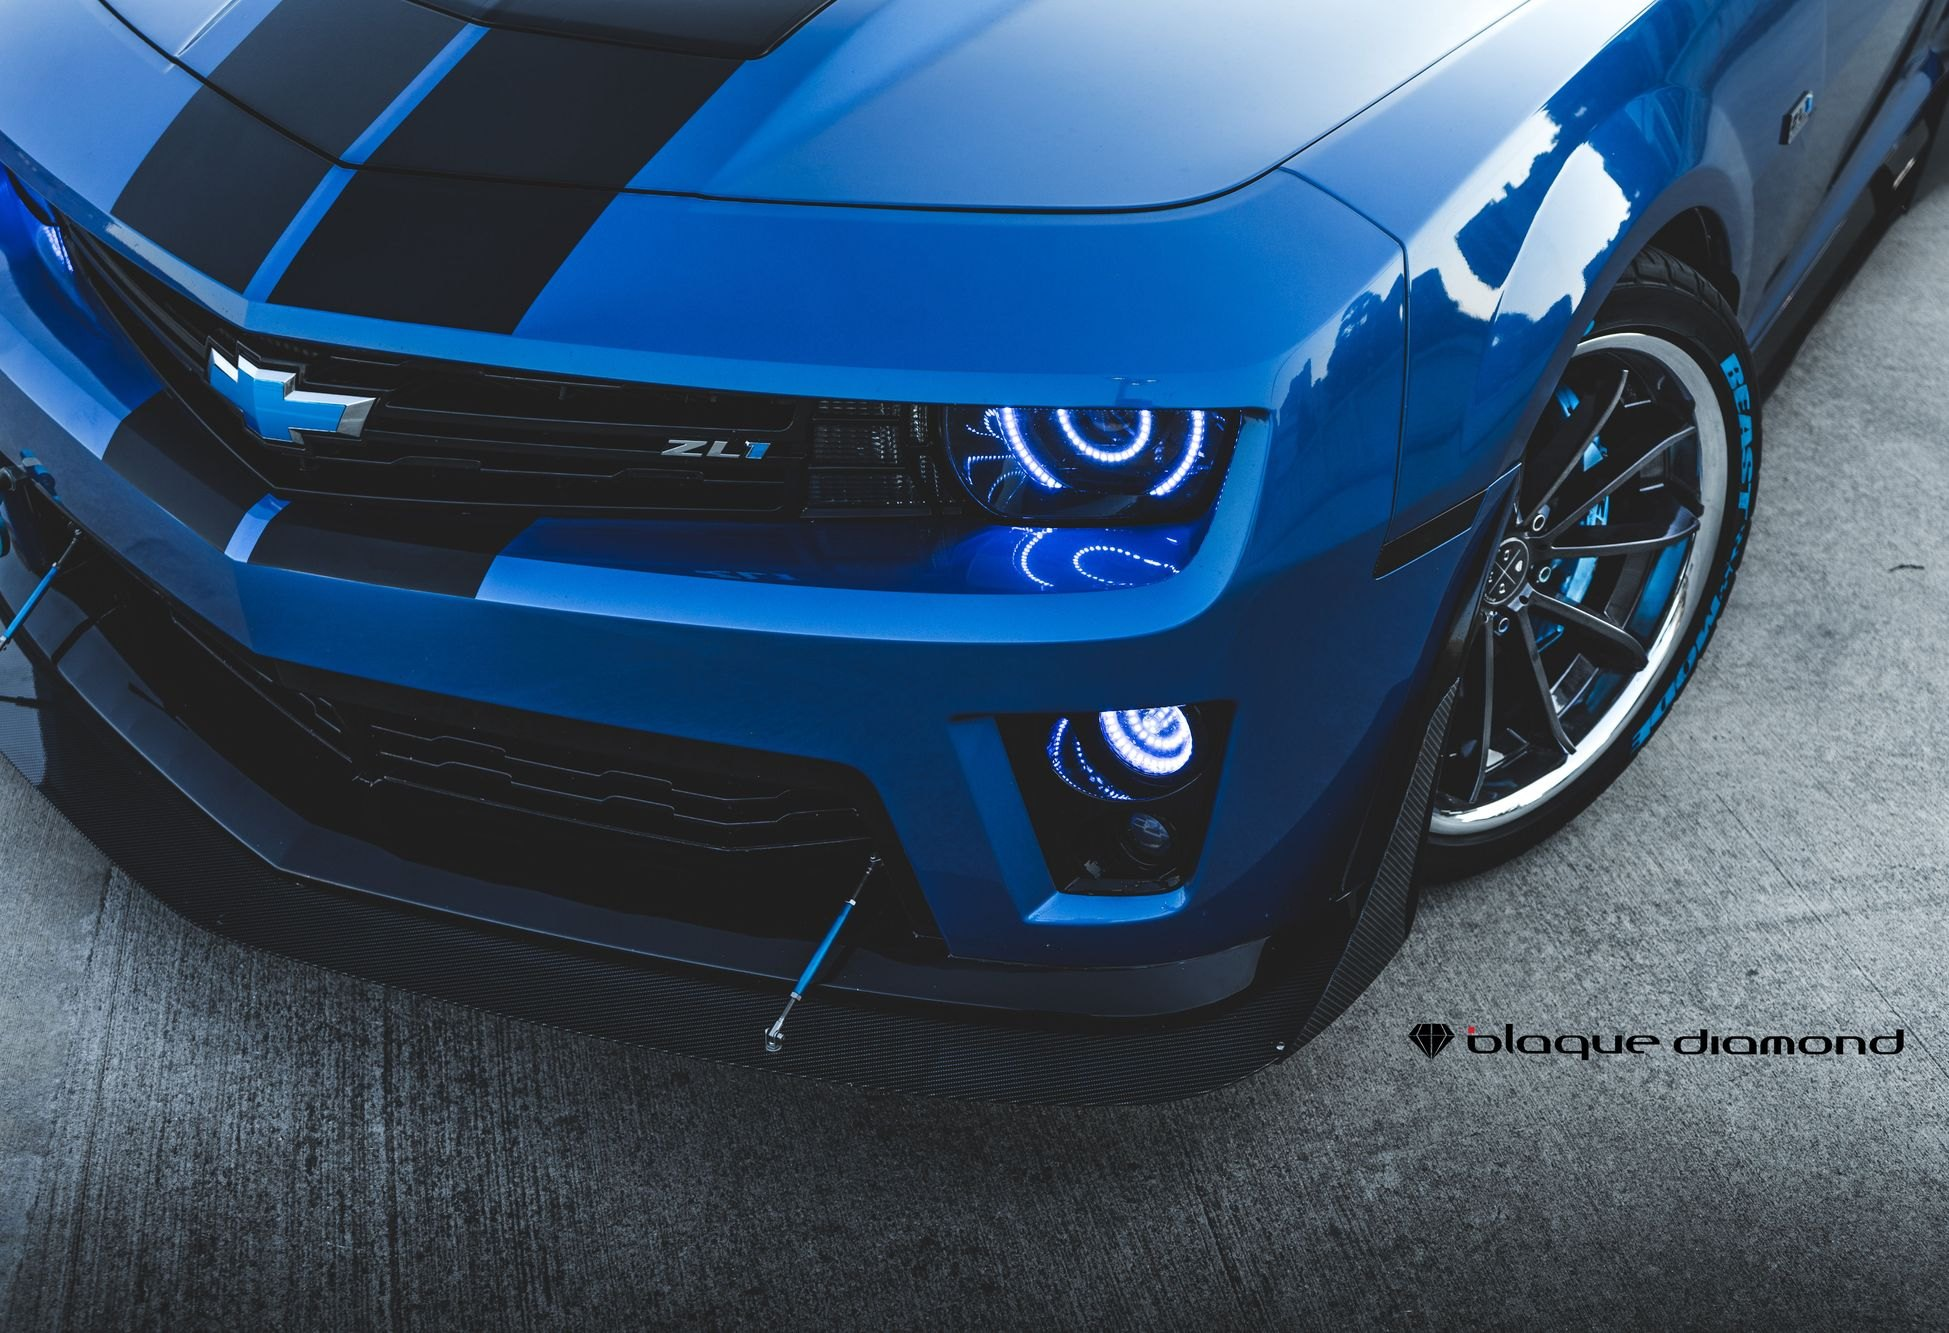 Blue Chevy Camaro with Aftermarket LED Headlights - Photo by Blaque Diamond